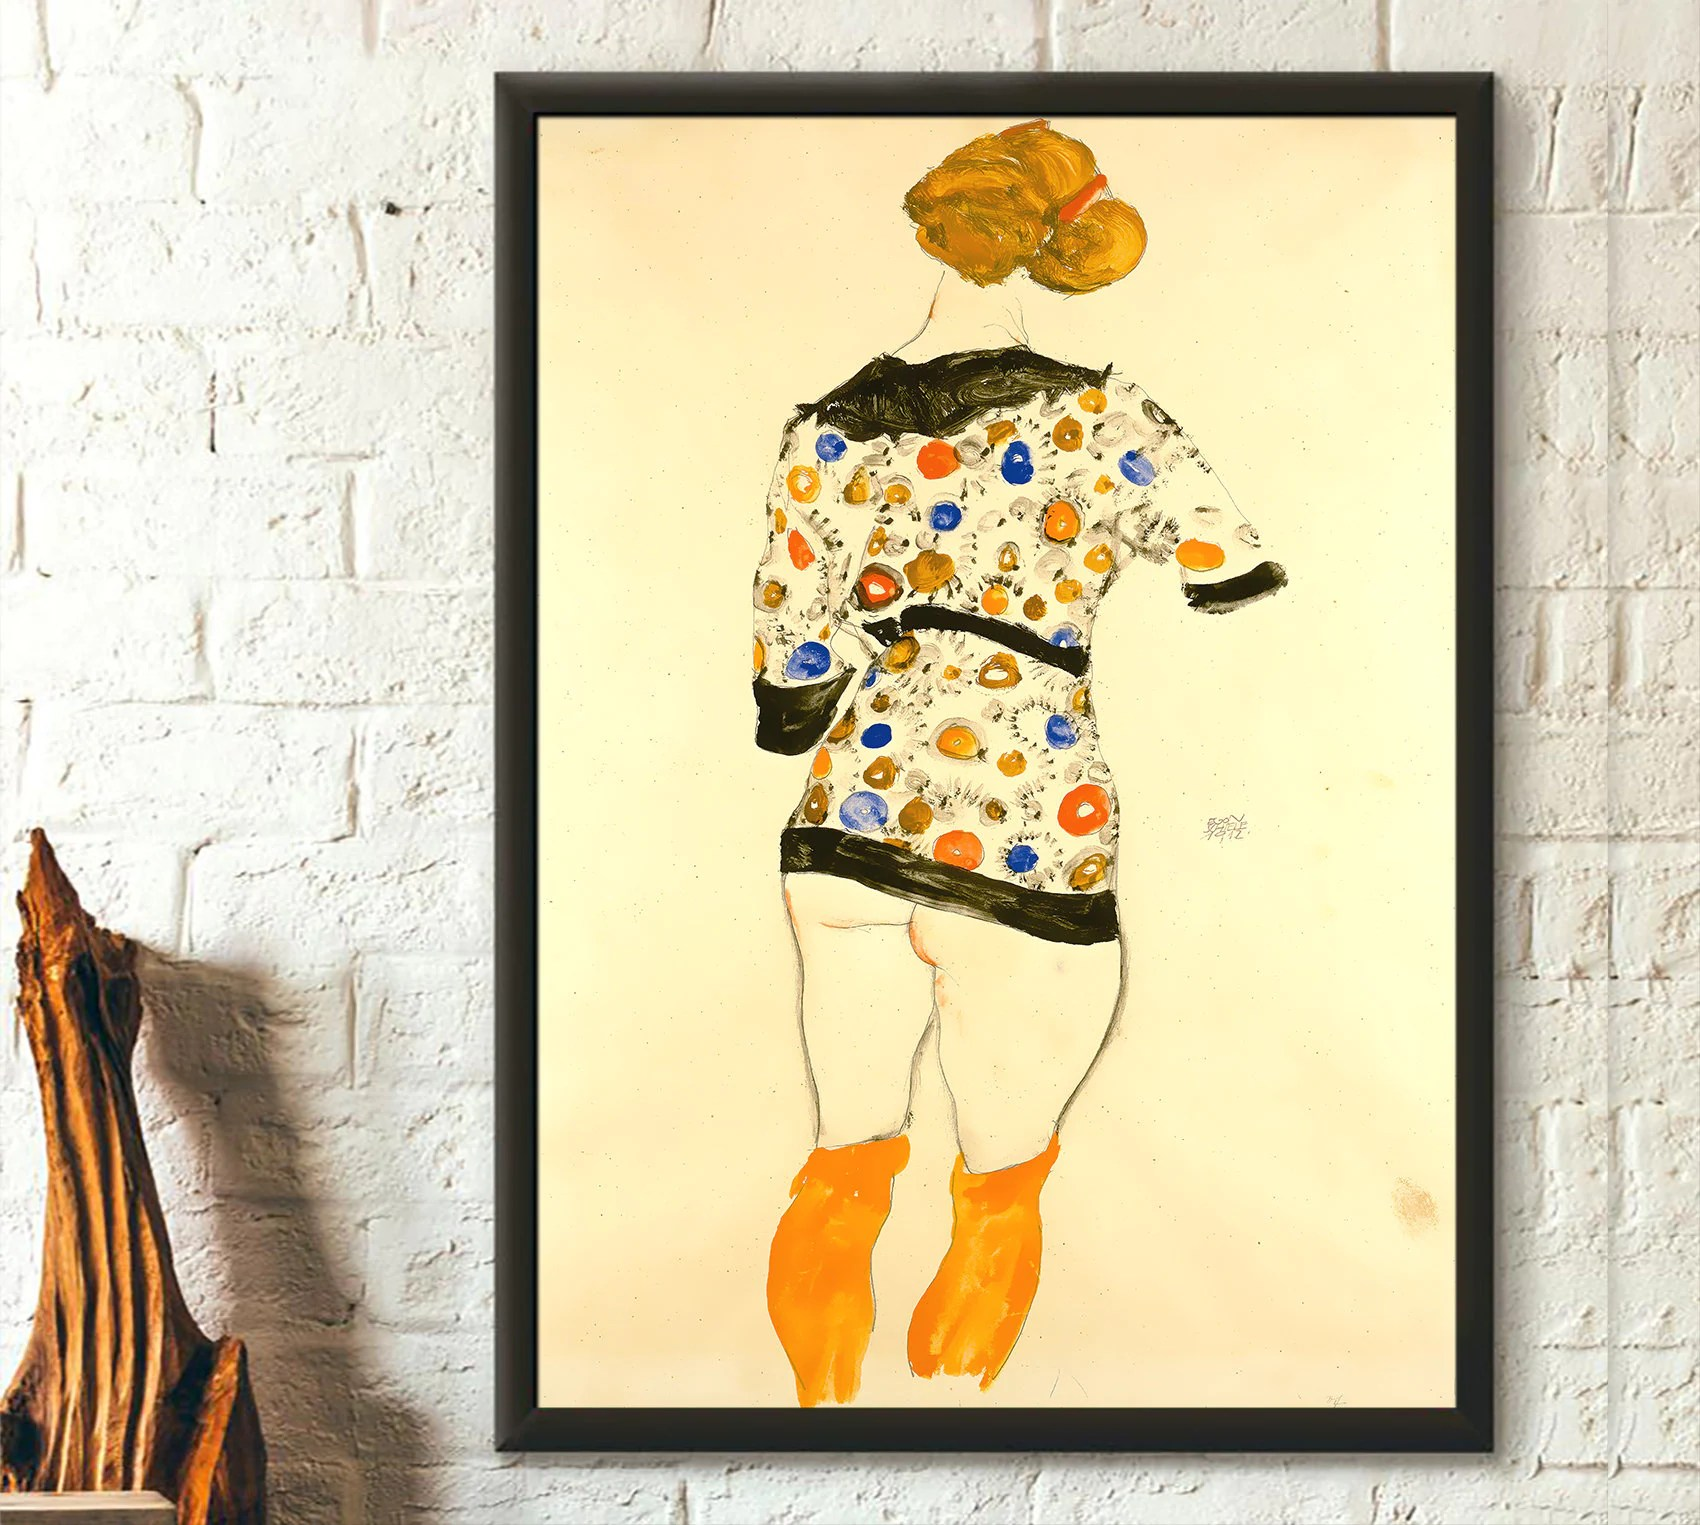 Egon Schiele Libro Egon Schiele Print Standing Woman In A Patterned Blouse 1912 Fine Art Print Schiele Poster Schiele Wall Art Birthday Gift Idea